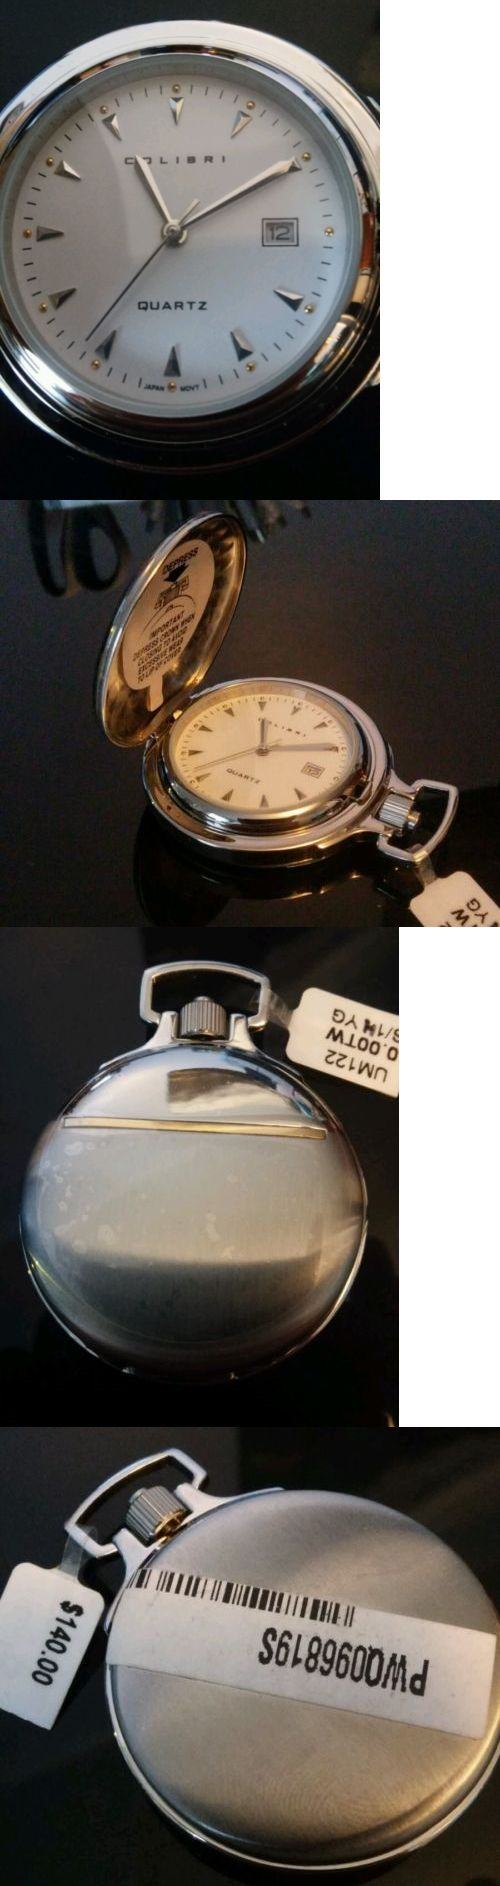 Other Pocket Watches 398: New Colibri Pocket Watch With 14K Yellow Gold Accent -> BUY IT NOW ONLY: $70 on eBay!